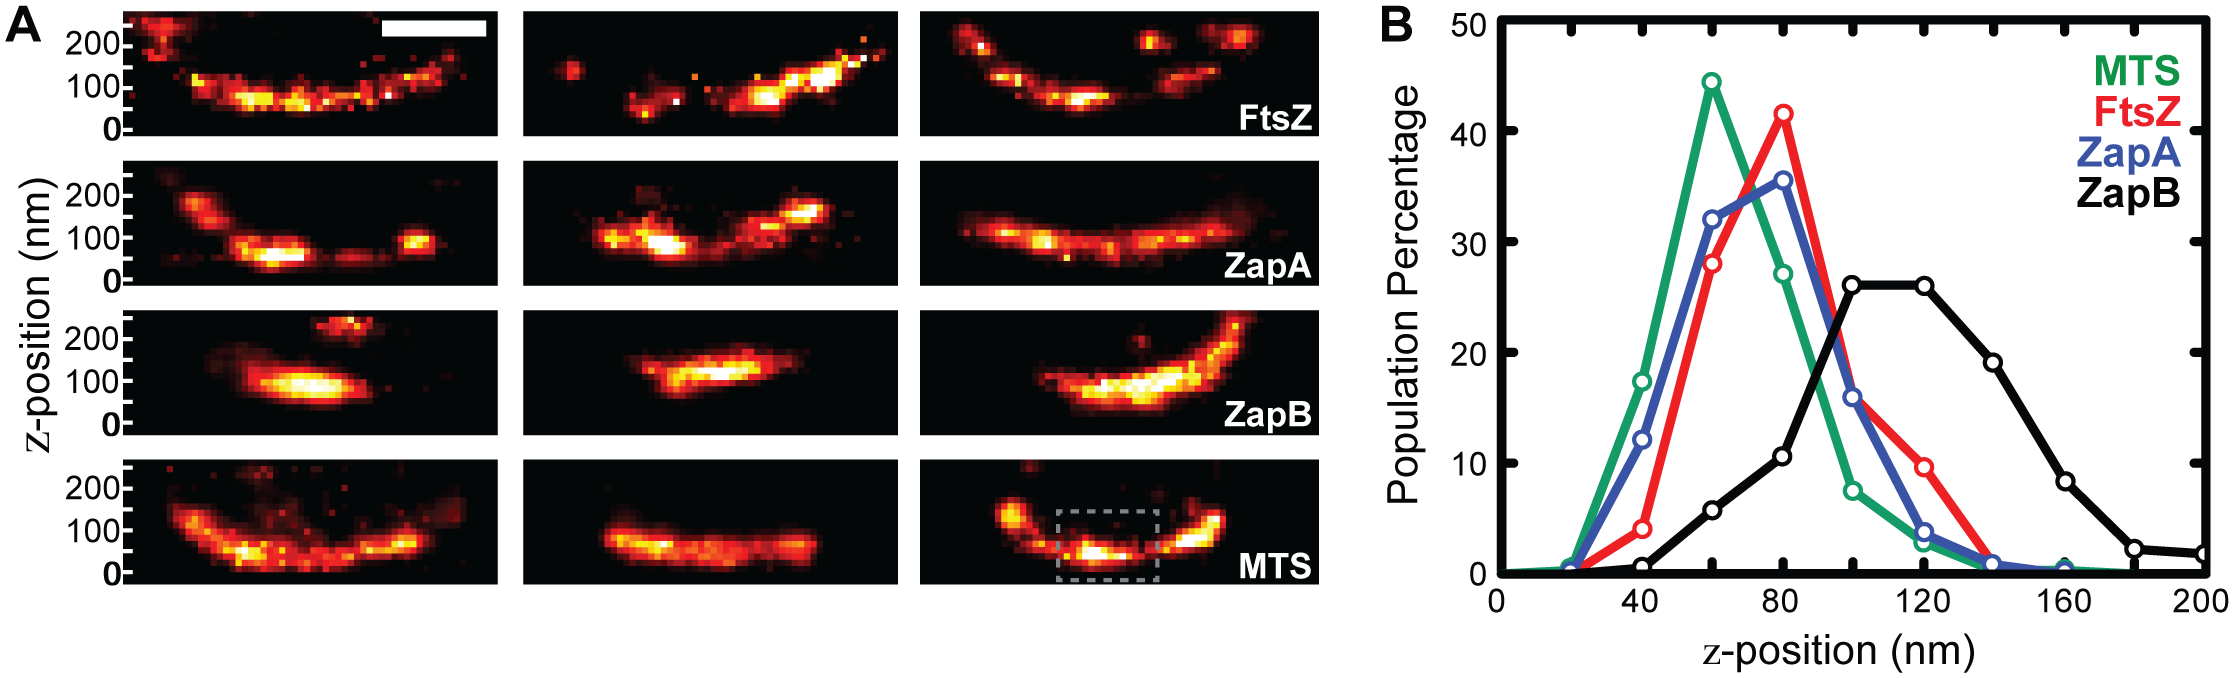 iPALM imaging and <i>z</i>-position measurements of FtsZ, ZapA, and ZapB.